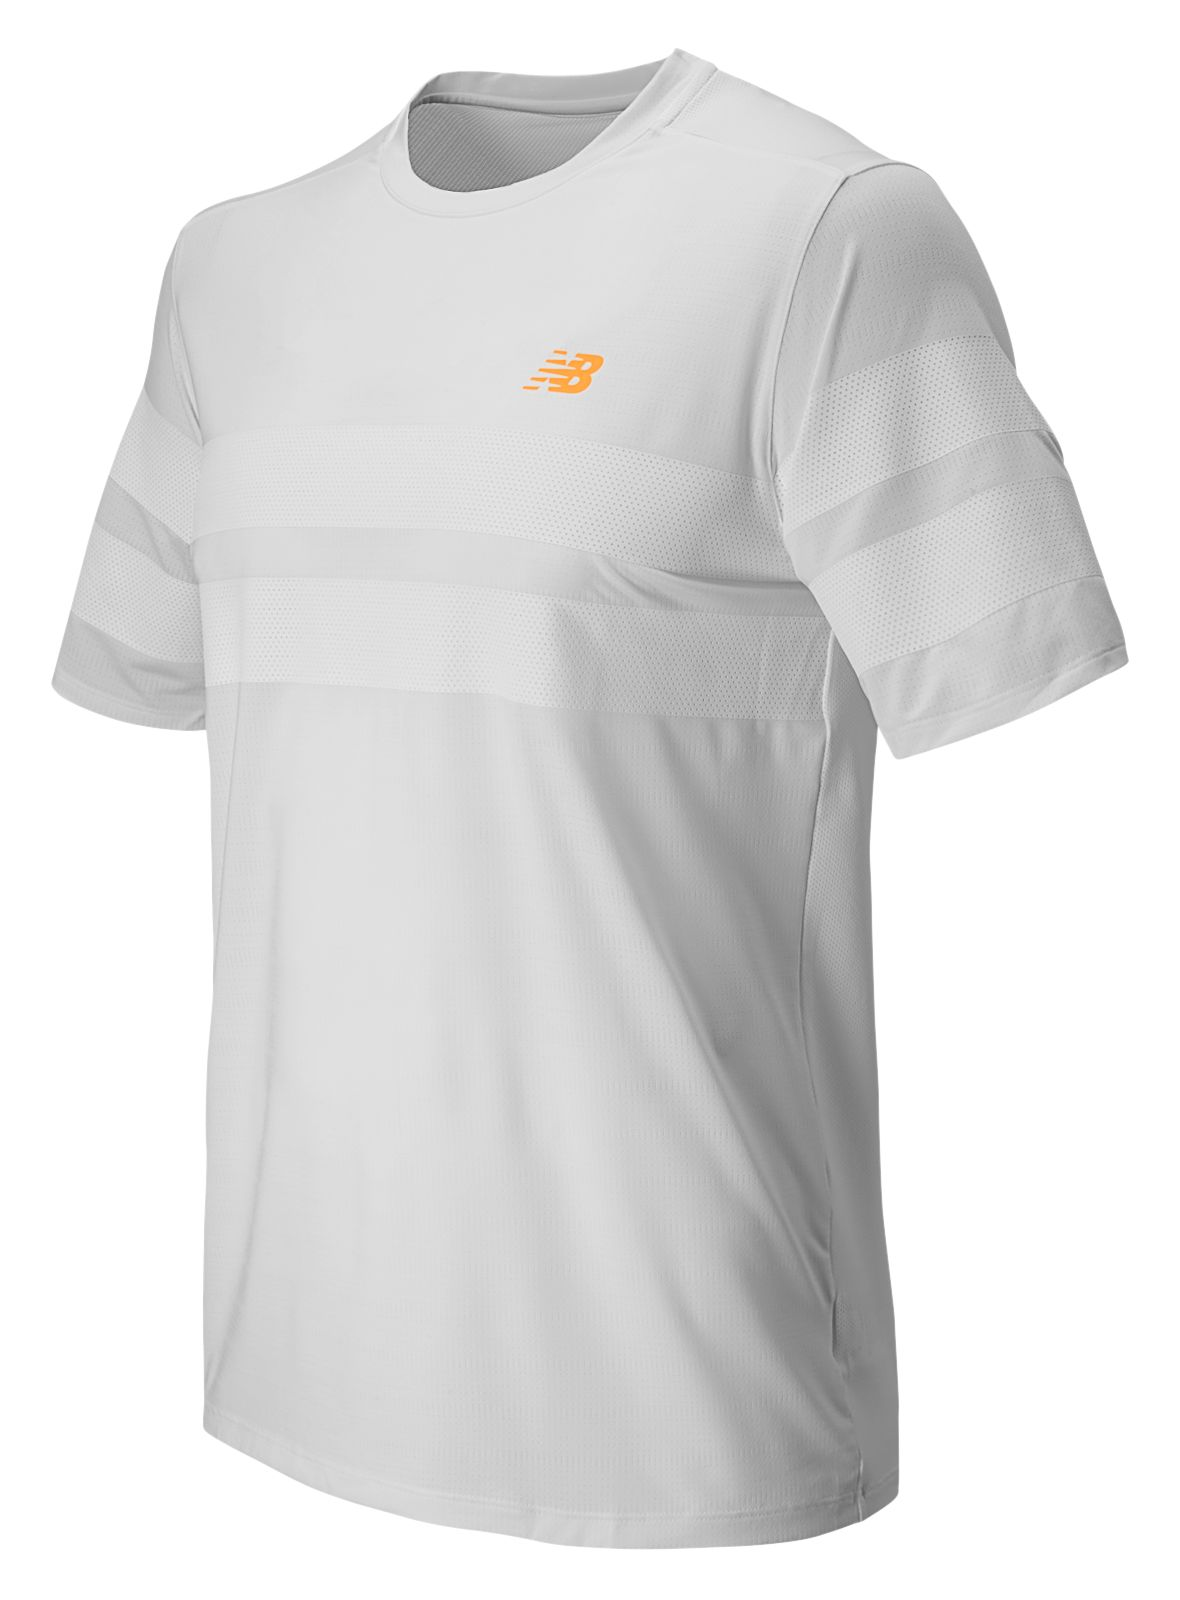 New Balance : Challenger Graphic Crew : Men's Apparel Outlet : MT61415WIL